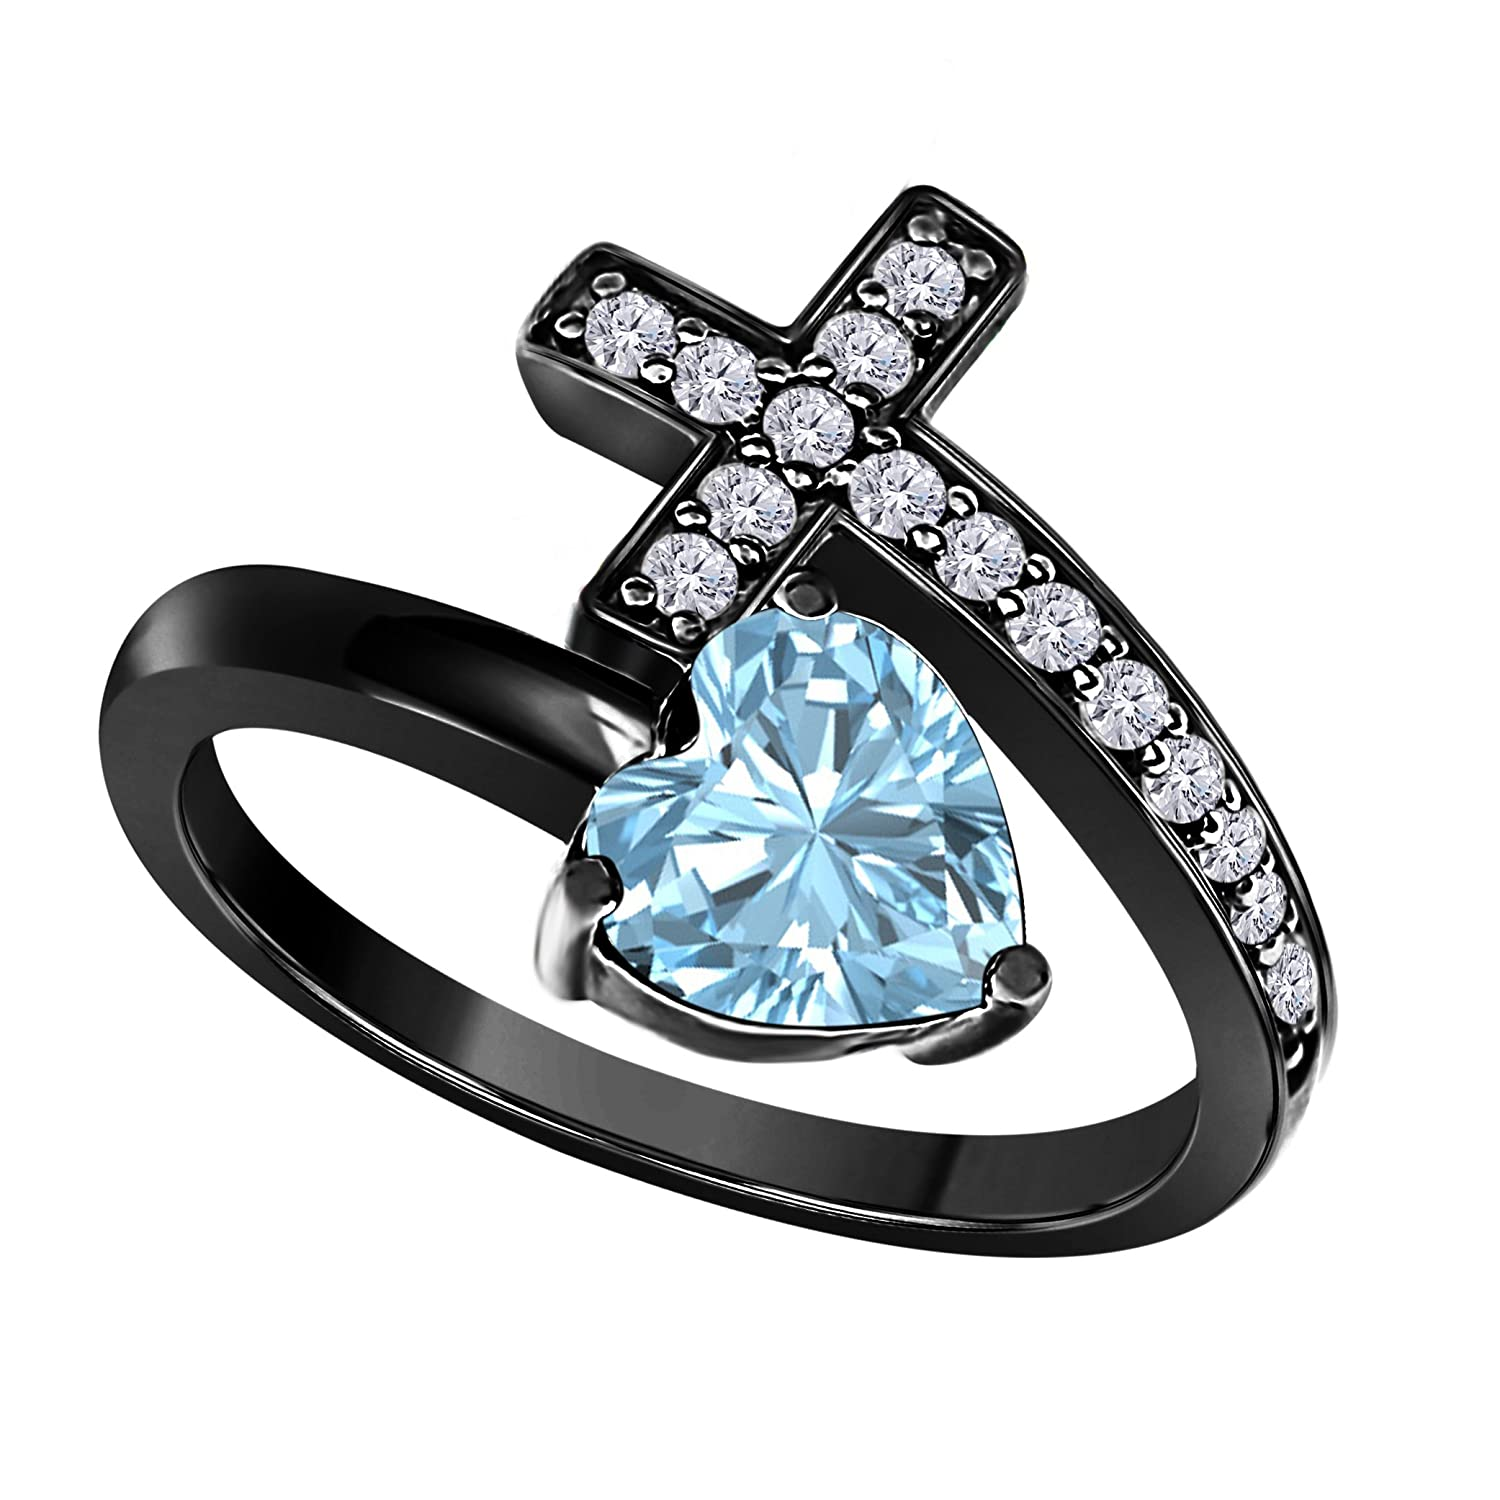 14k Gold Plated Alloy White/Yellow/Rose/Black Heart Cut Created Aquamarine & Cubic Zirconia Christian Sideways Cross Ring Wedding & Engagement Ring Jewelry Free Size